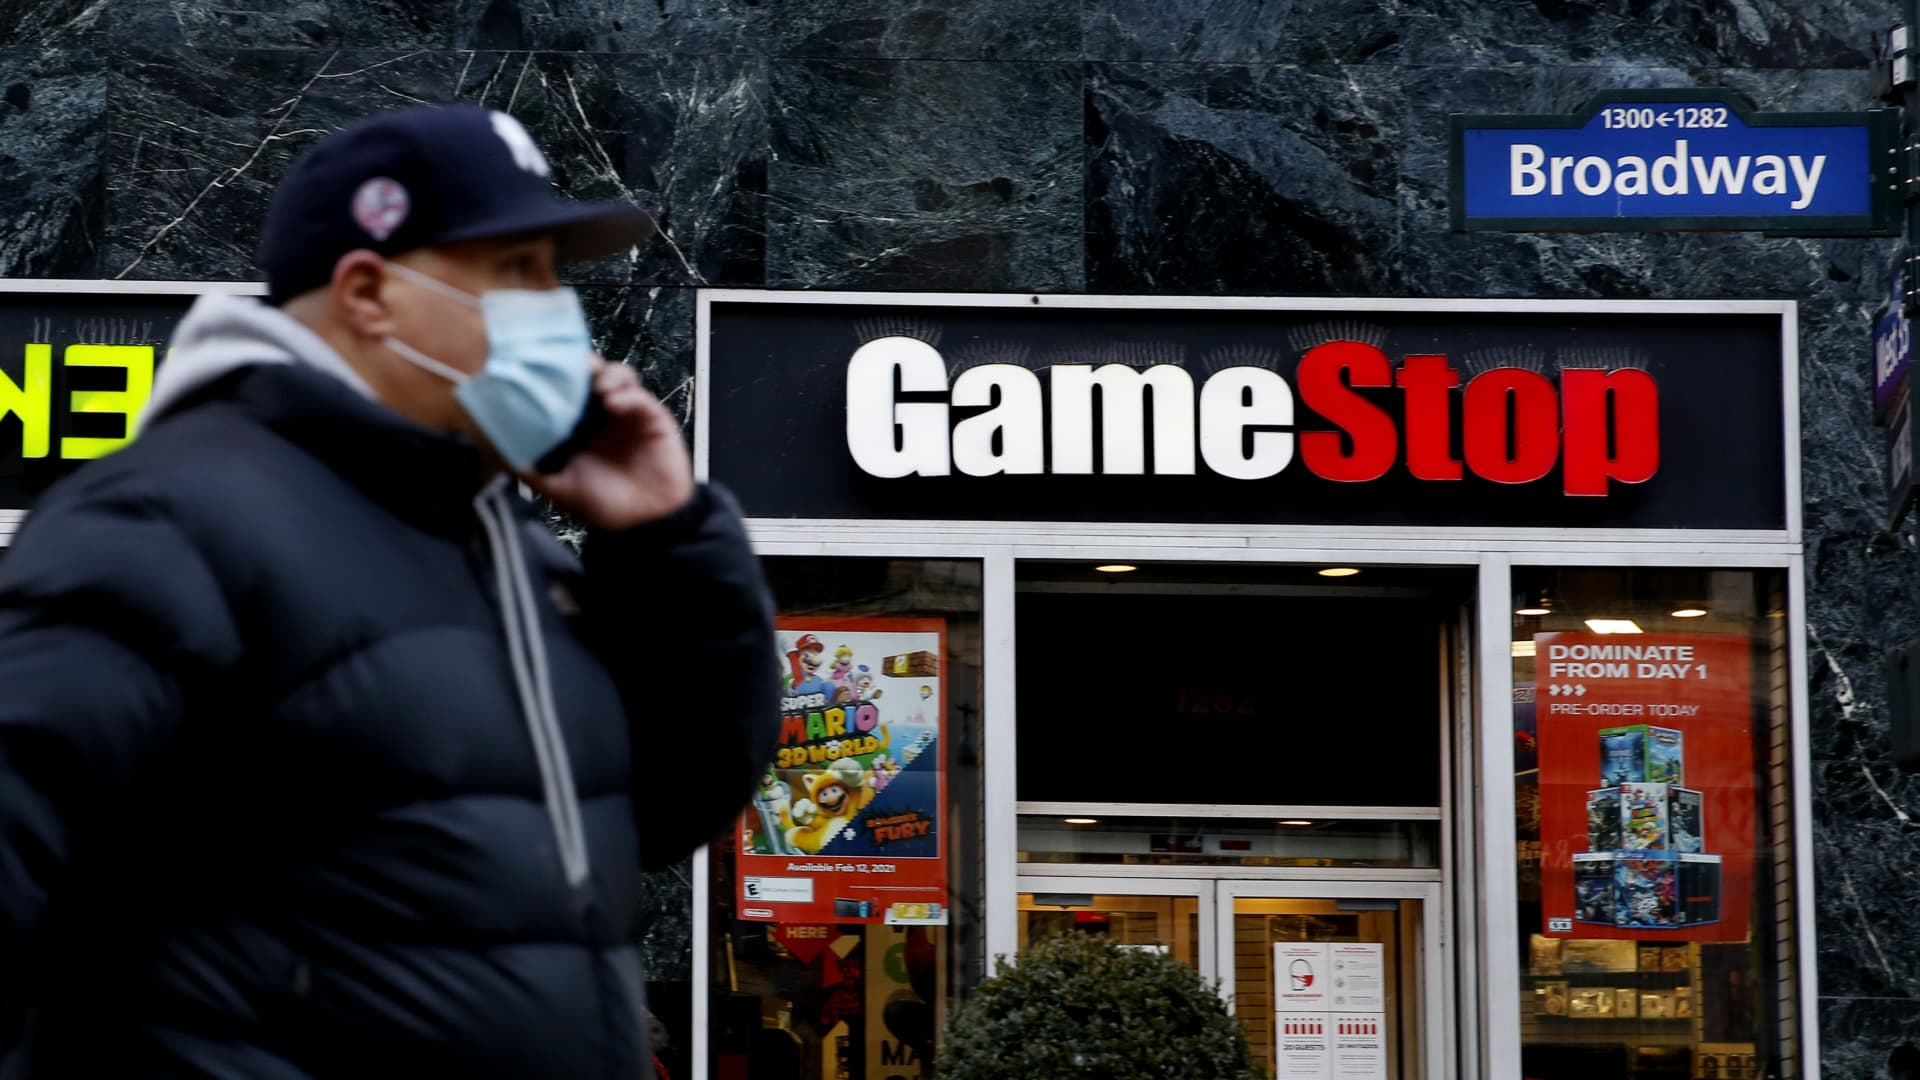 A man talks by his phone in front of GameStop at 6th Avenue on February 25, 2021 in New York.